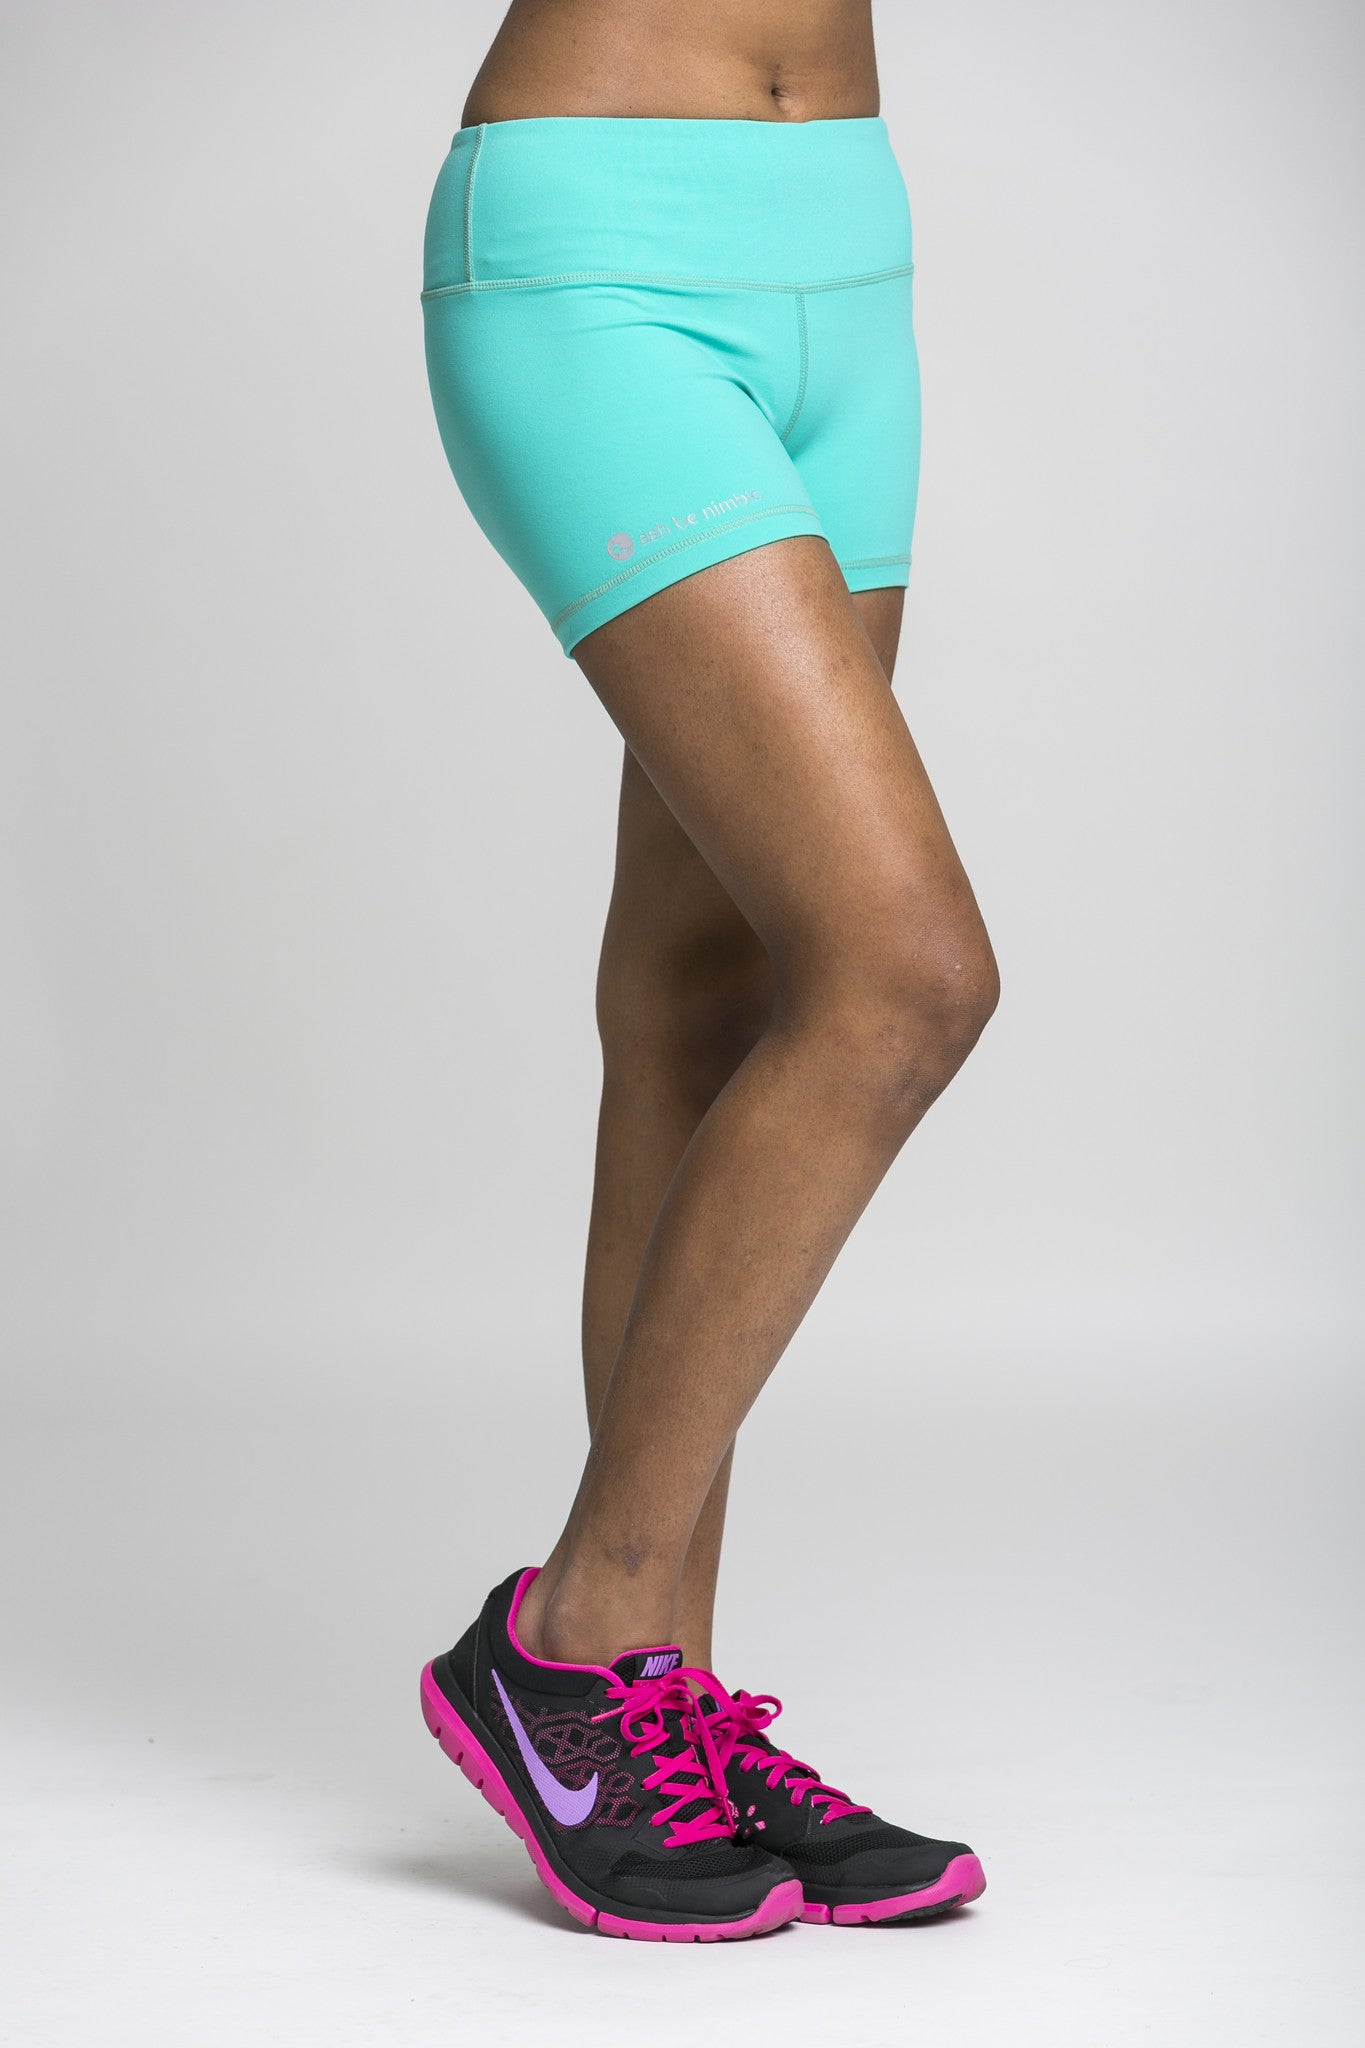 rush hour shorts - teal green